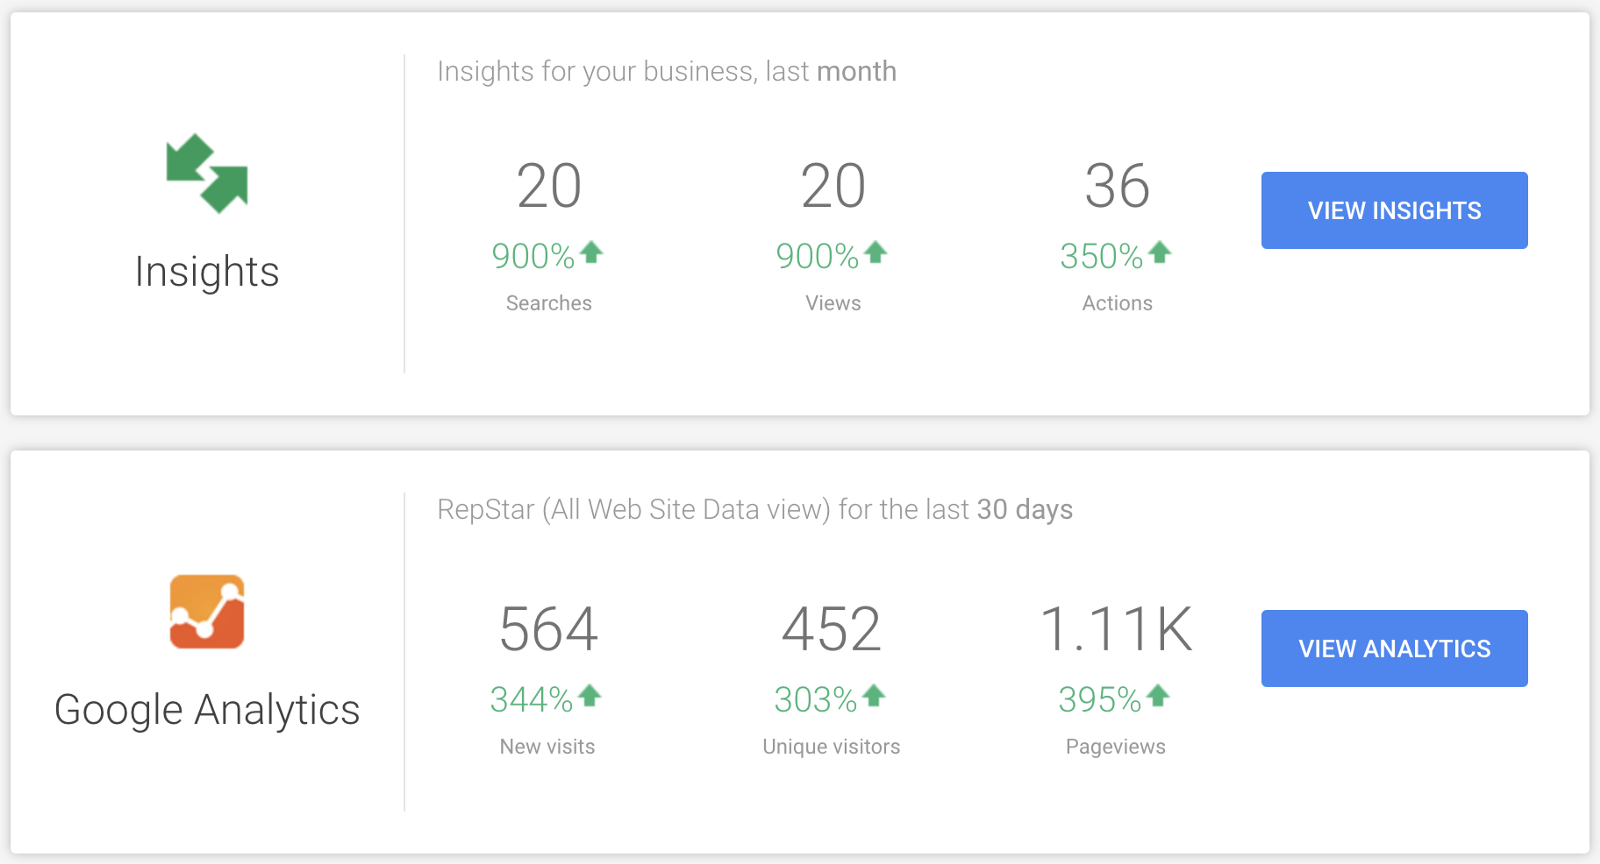 Insights and Analytics for your Google My Business page / website